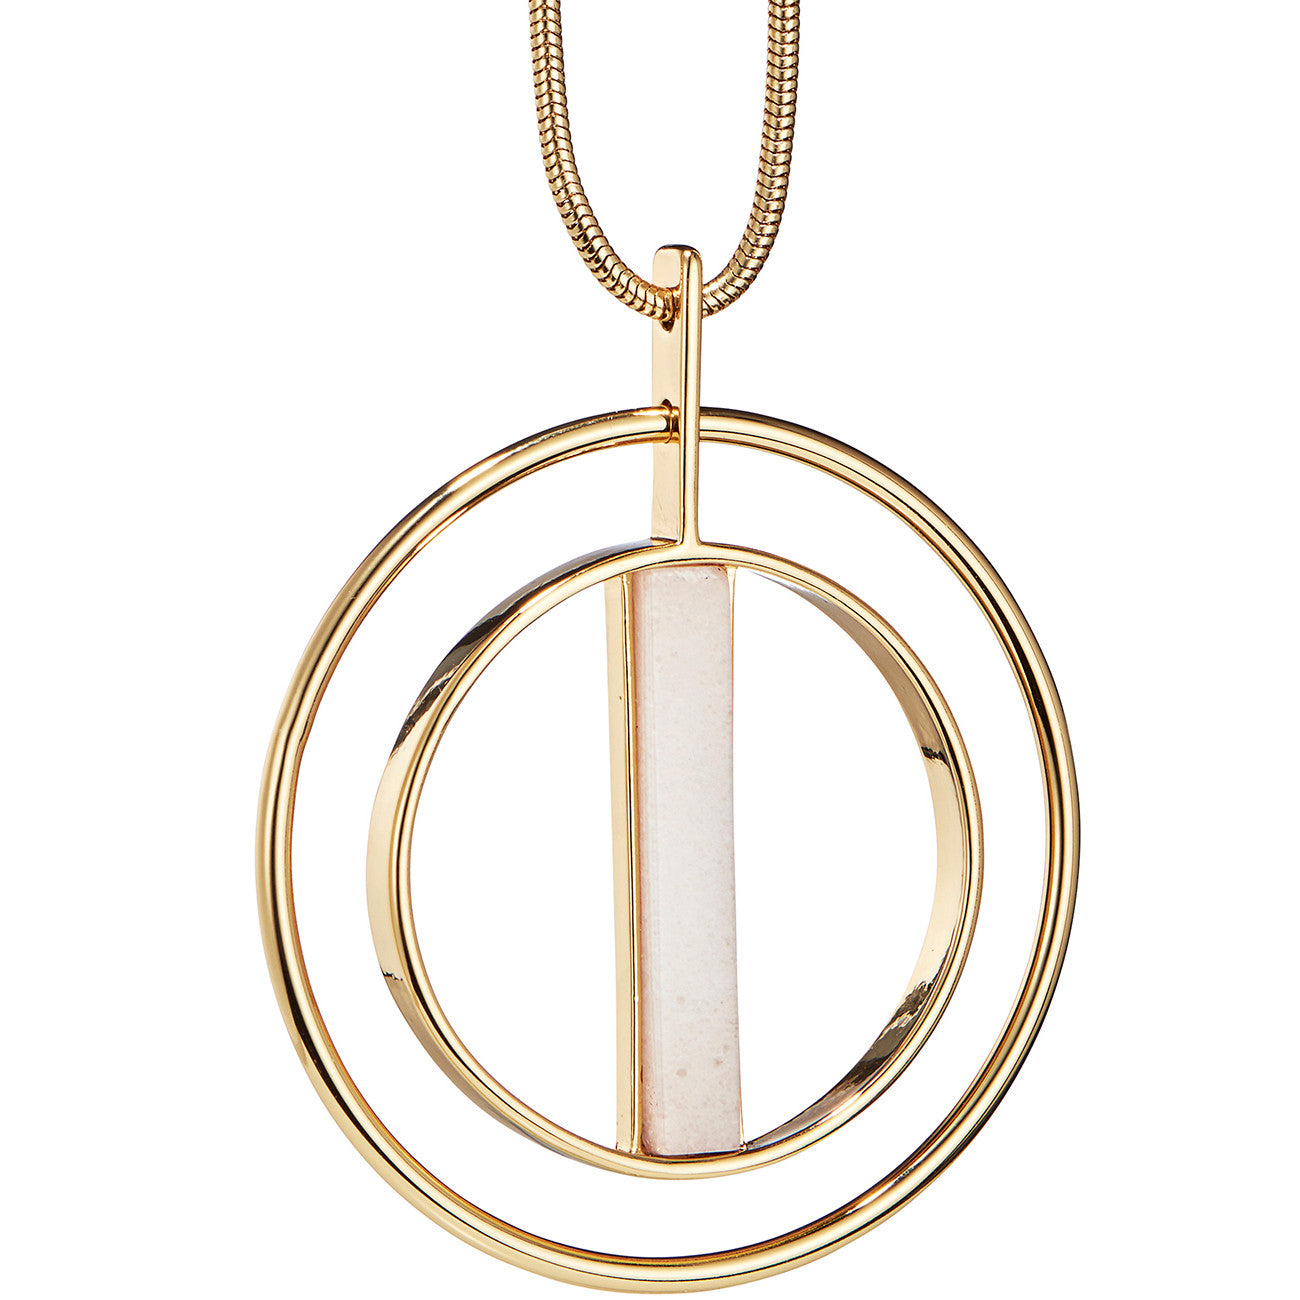 Lennox Pendant by Jenny Bird in Gold with Milky Jade Stone